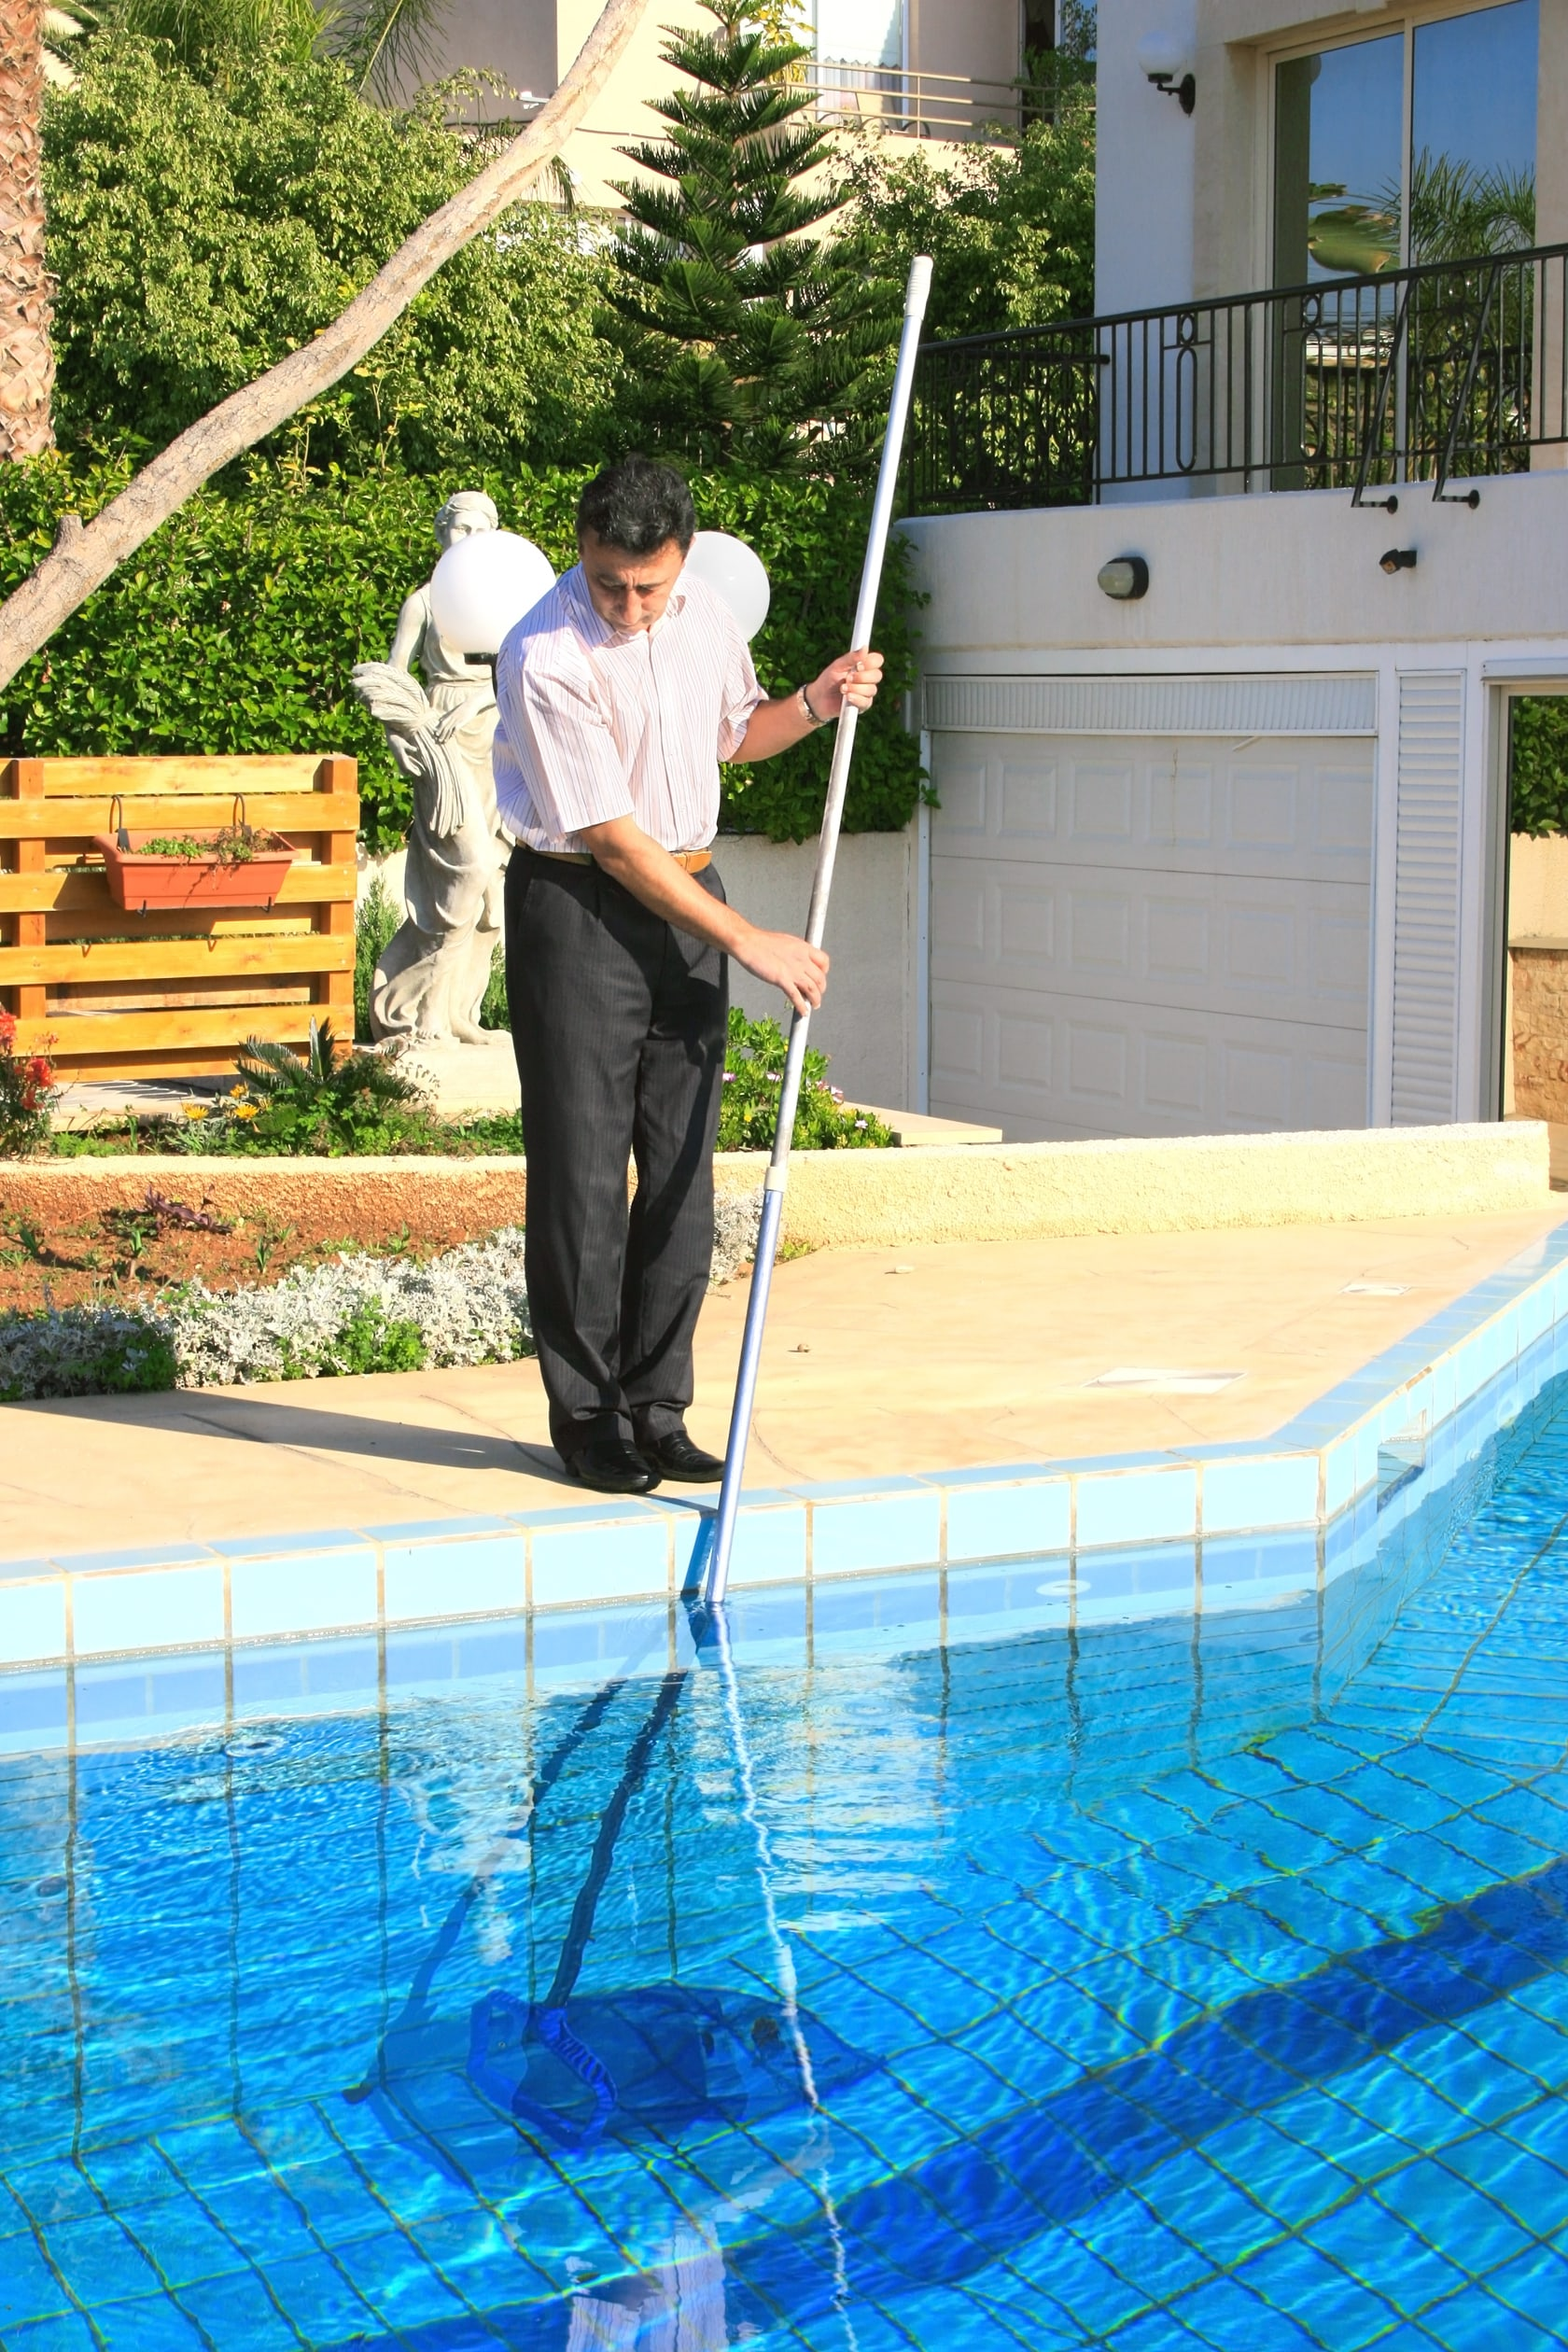 Pool maintenance 101 how to clean a pool in 5 easy steps for Pool service